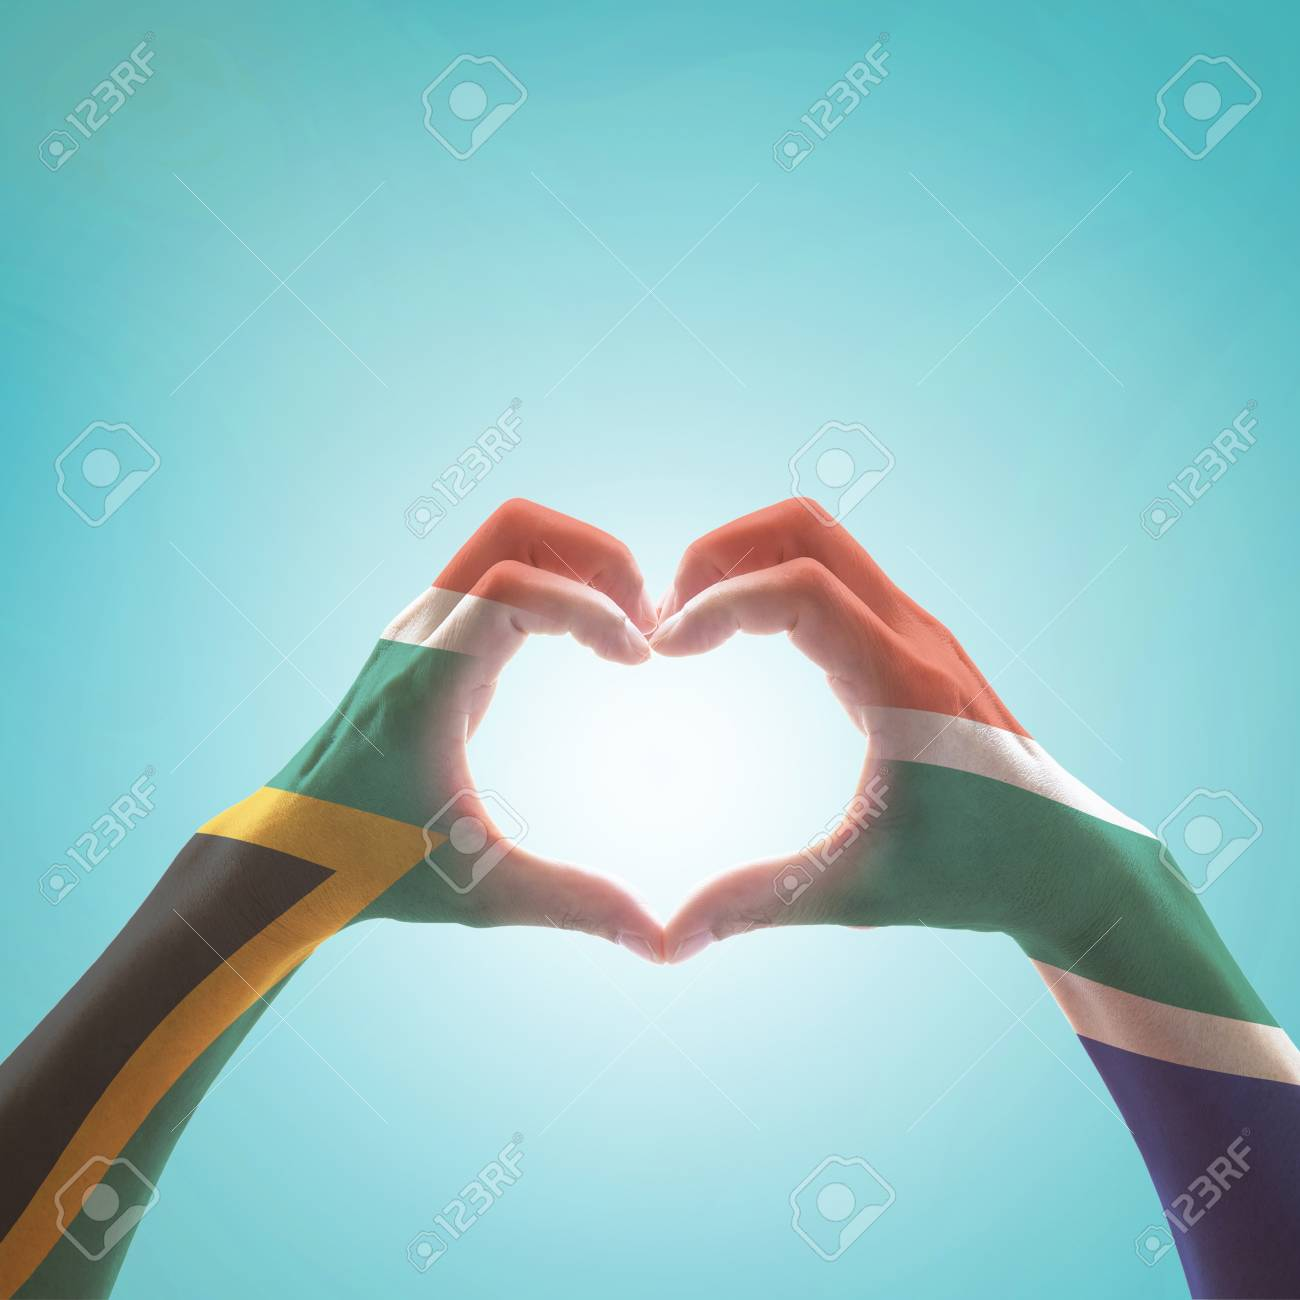 South Africa flag on woman hands in heart shape isolated on mint background for national unity, union, love and reconciliation concept - 116068391